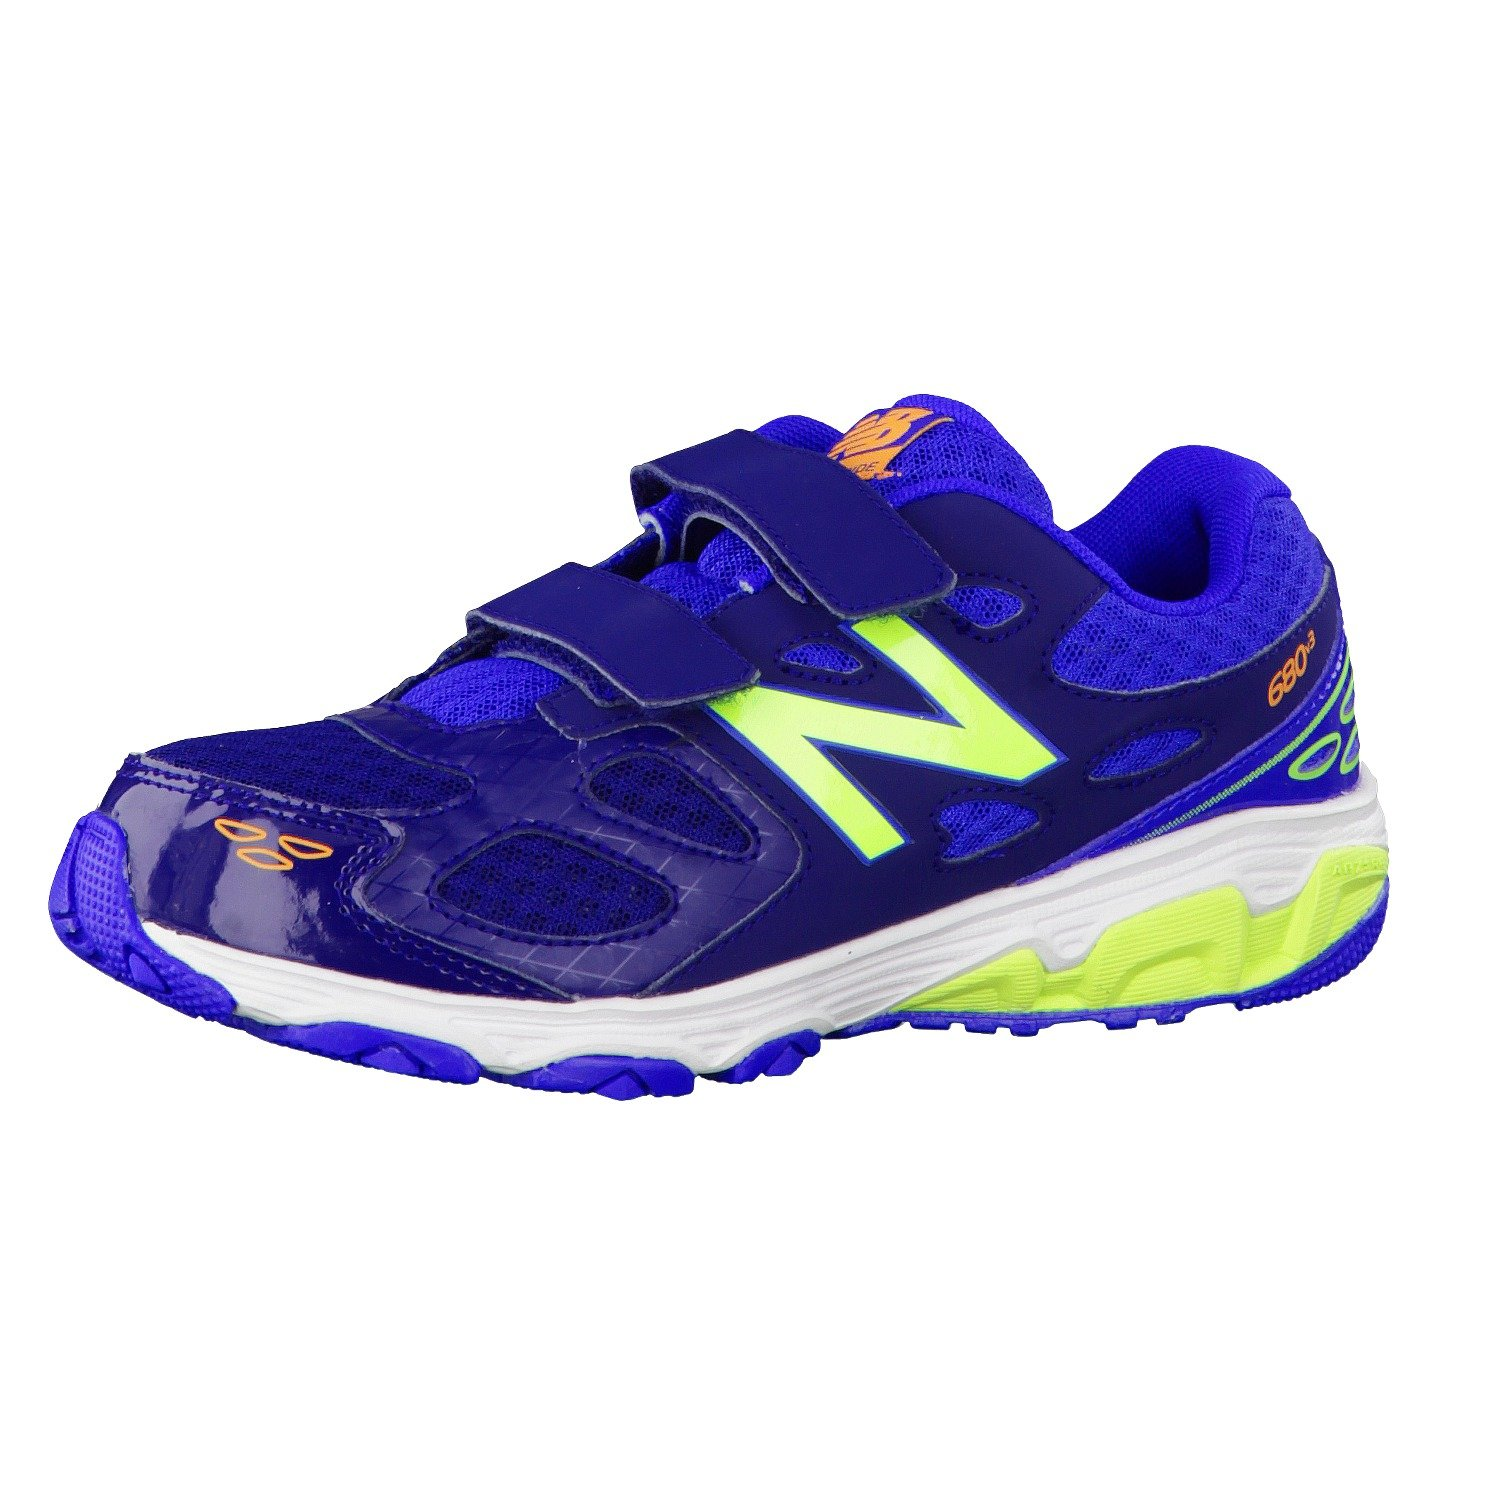 New Balance Unisex-Kinder Nbkv680tbp Pumps